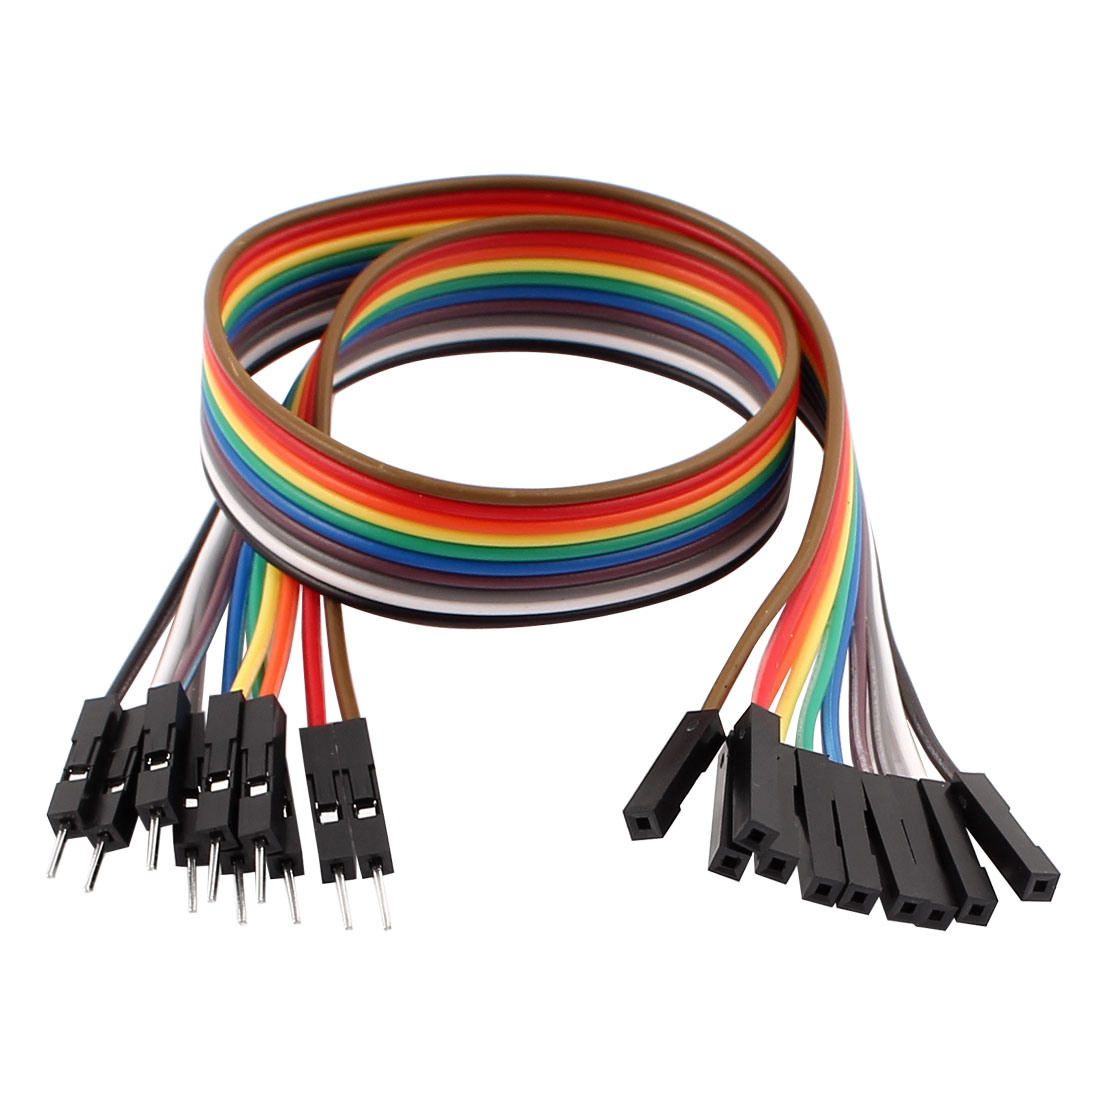 10PCS 2.54mm Pitch 1P Male to Female Breadboard Dual Head Jumper Wire Cable 30cm